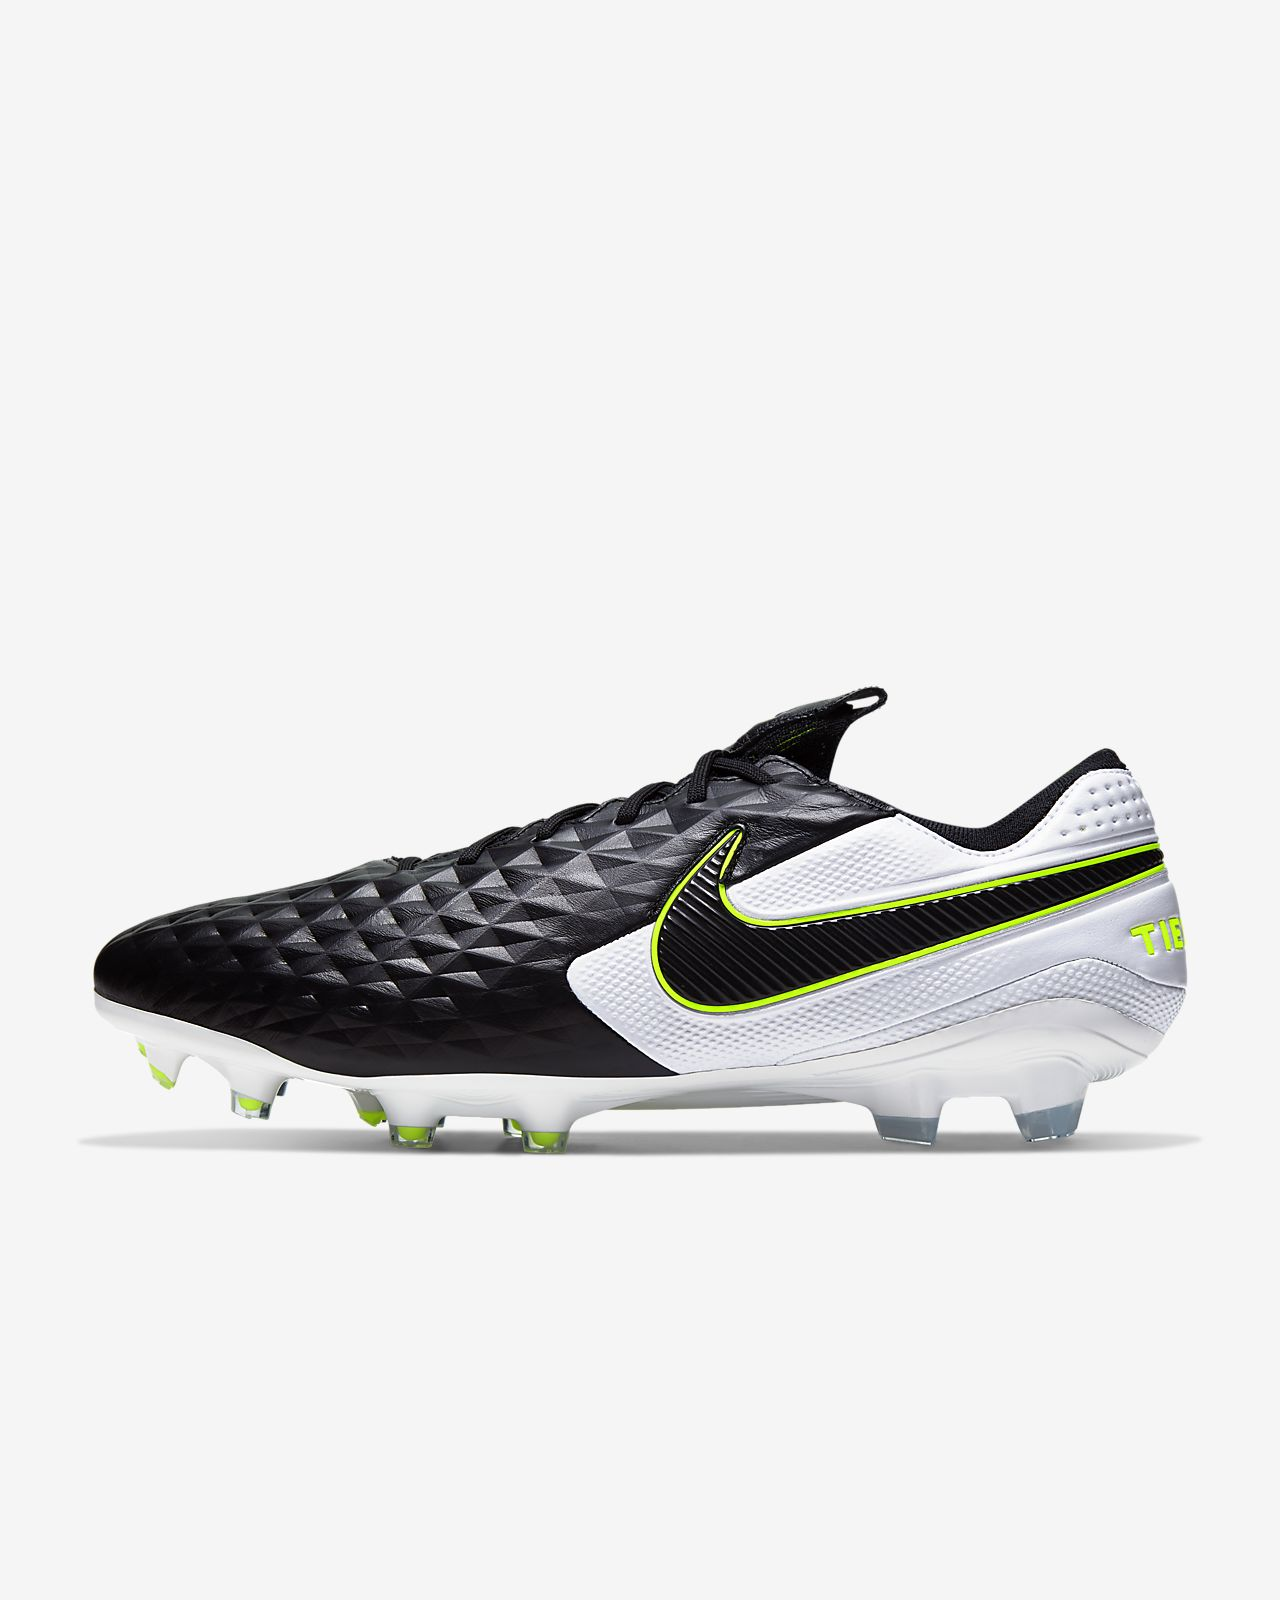 The Best Leather Soccer Cleats in 2019 |